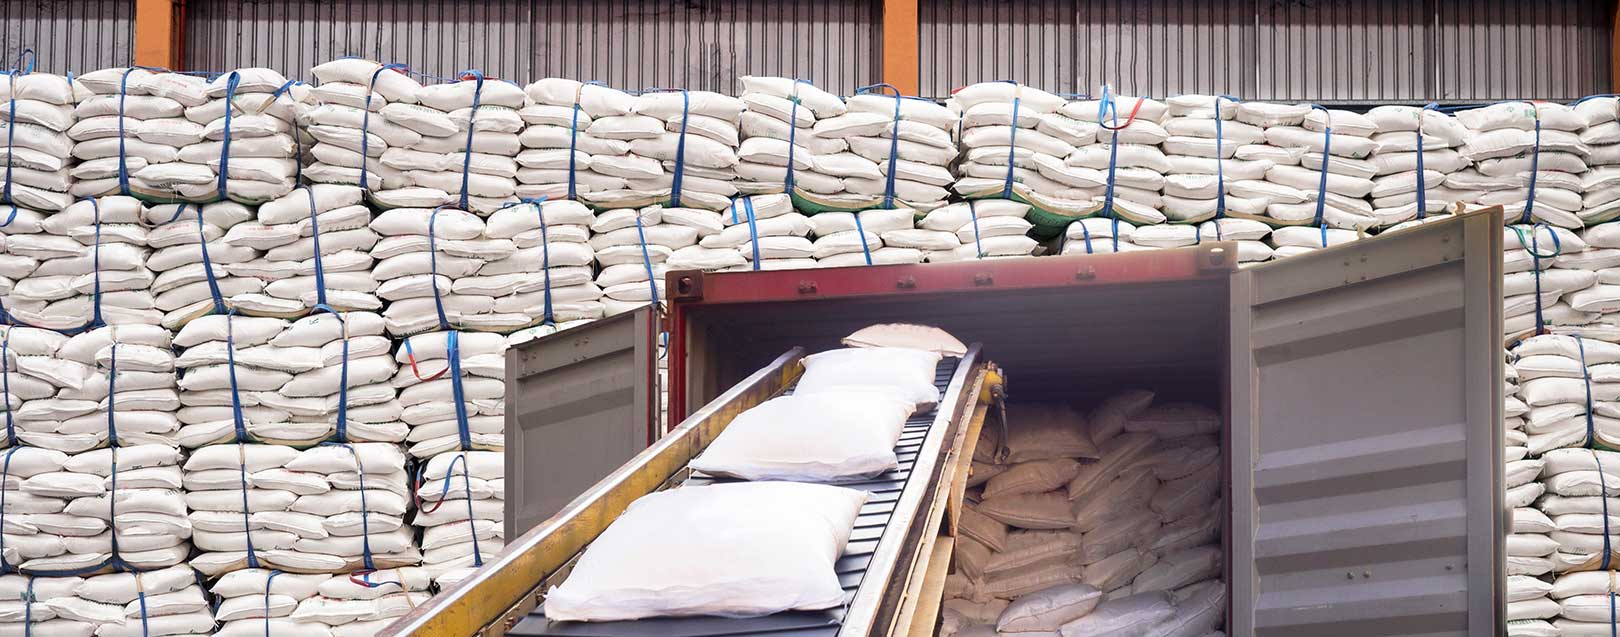 Allocation of sugar quantity for export under tariff rate quota, USDA